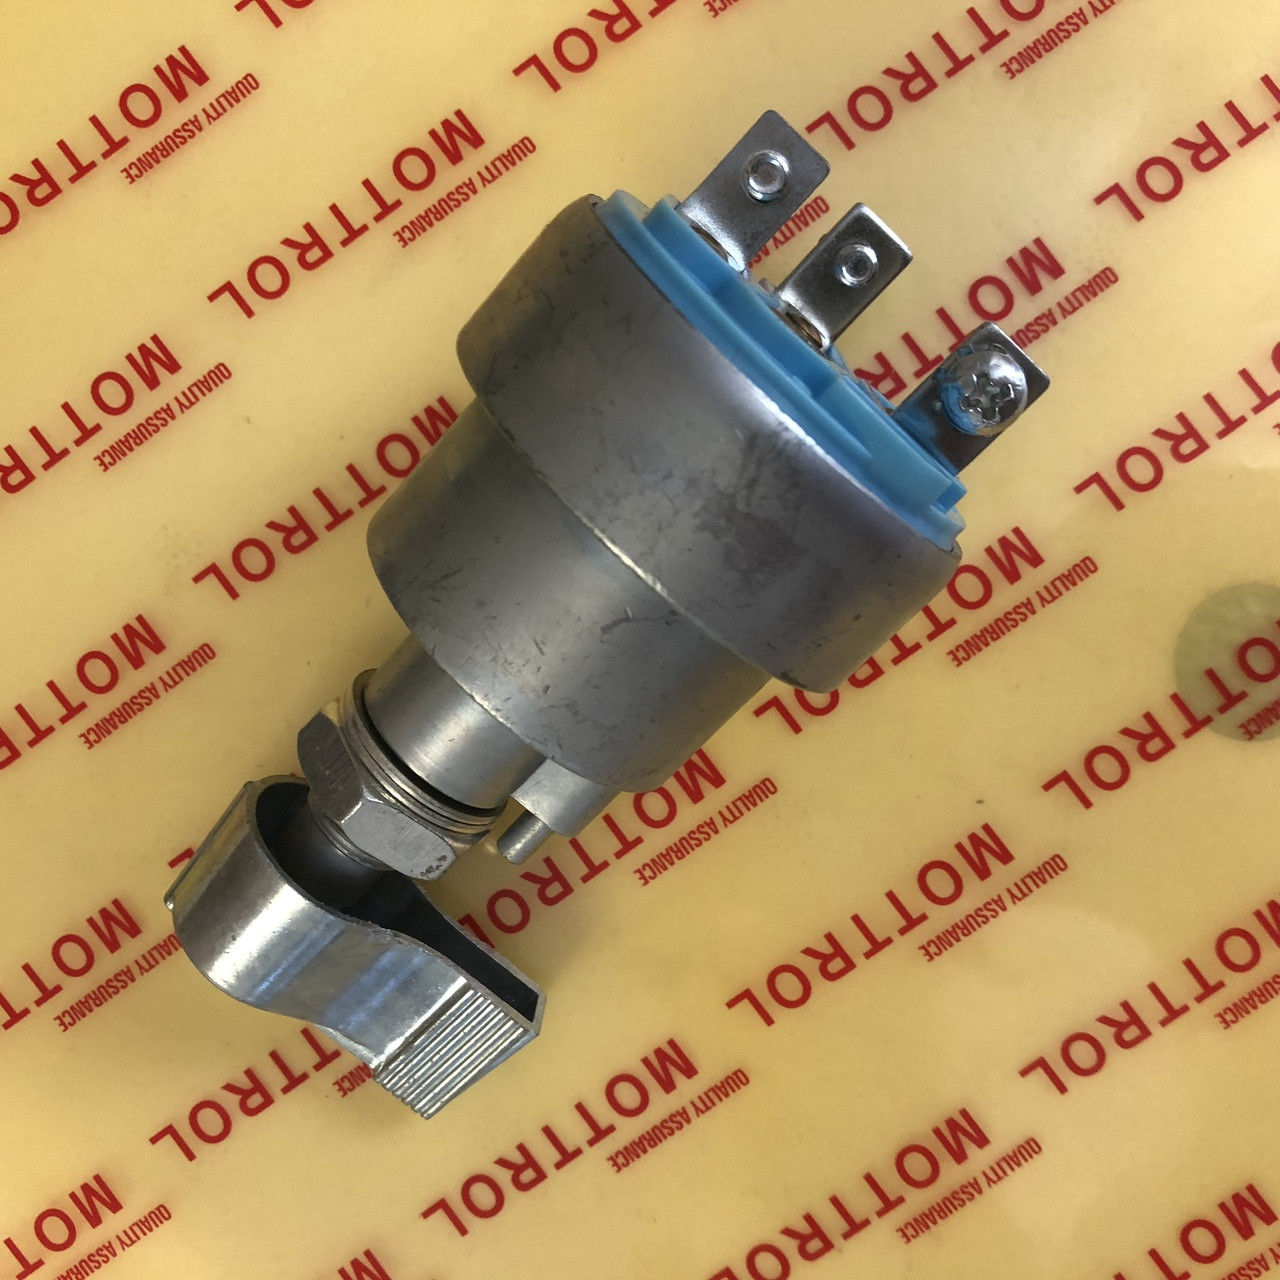 STARTER SWITCH FITS CATERPILLAR EXCAVATOR 7N4160 8L6721 4D3759 IGNITION SWITCH